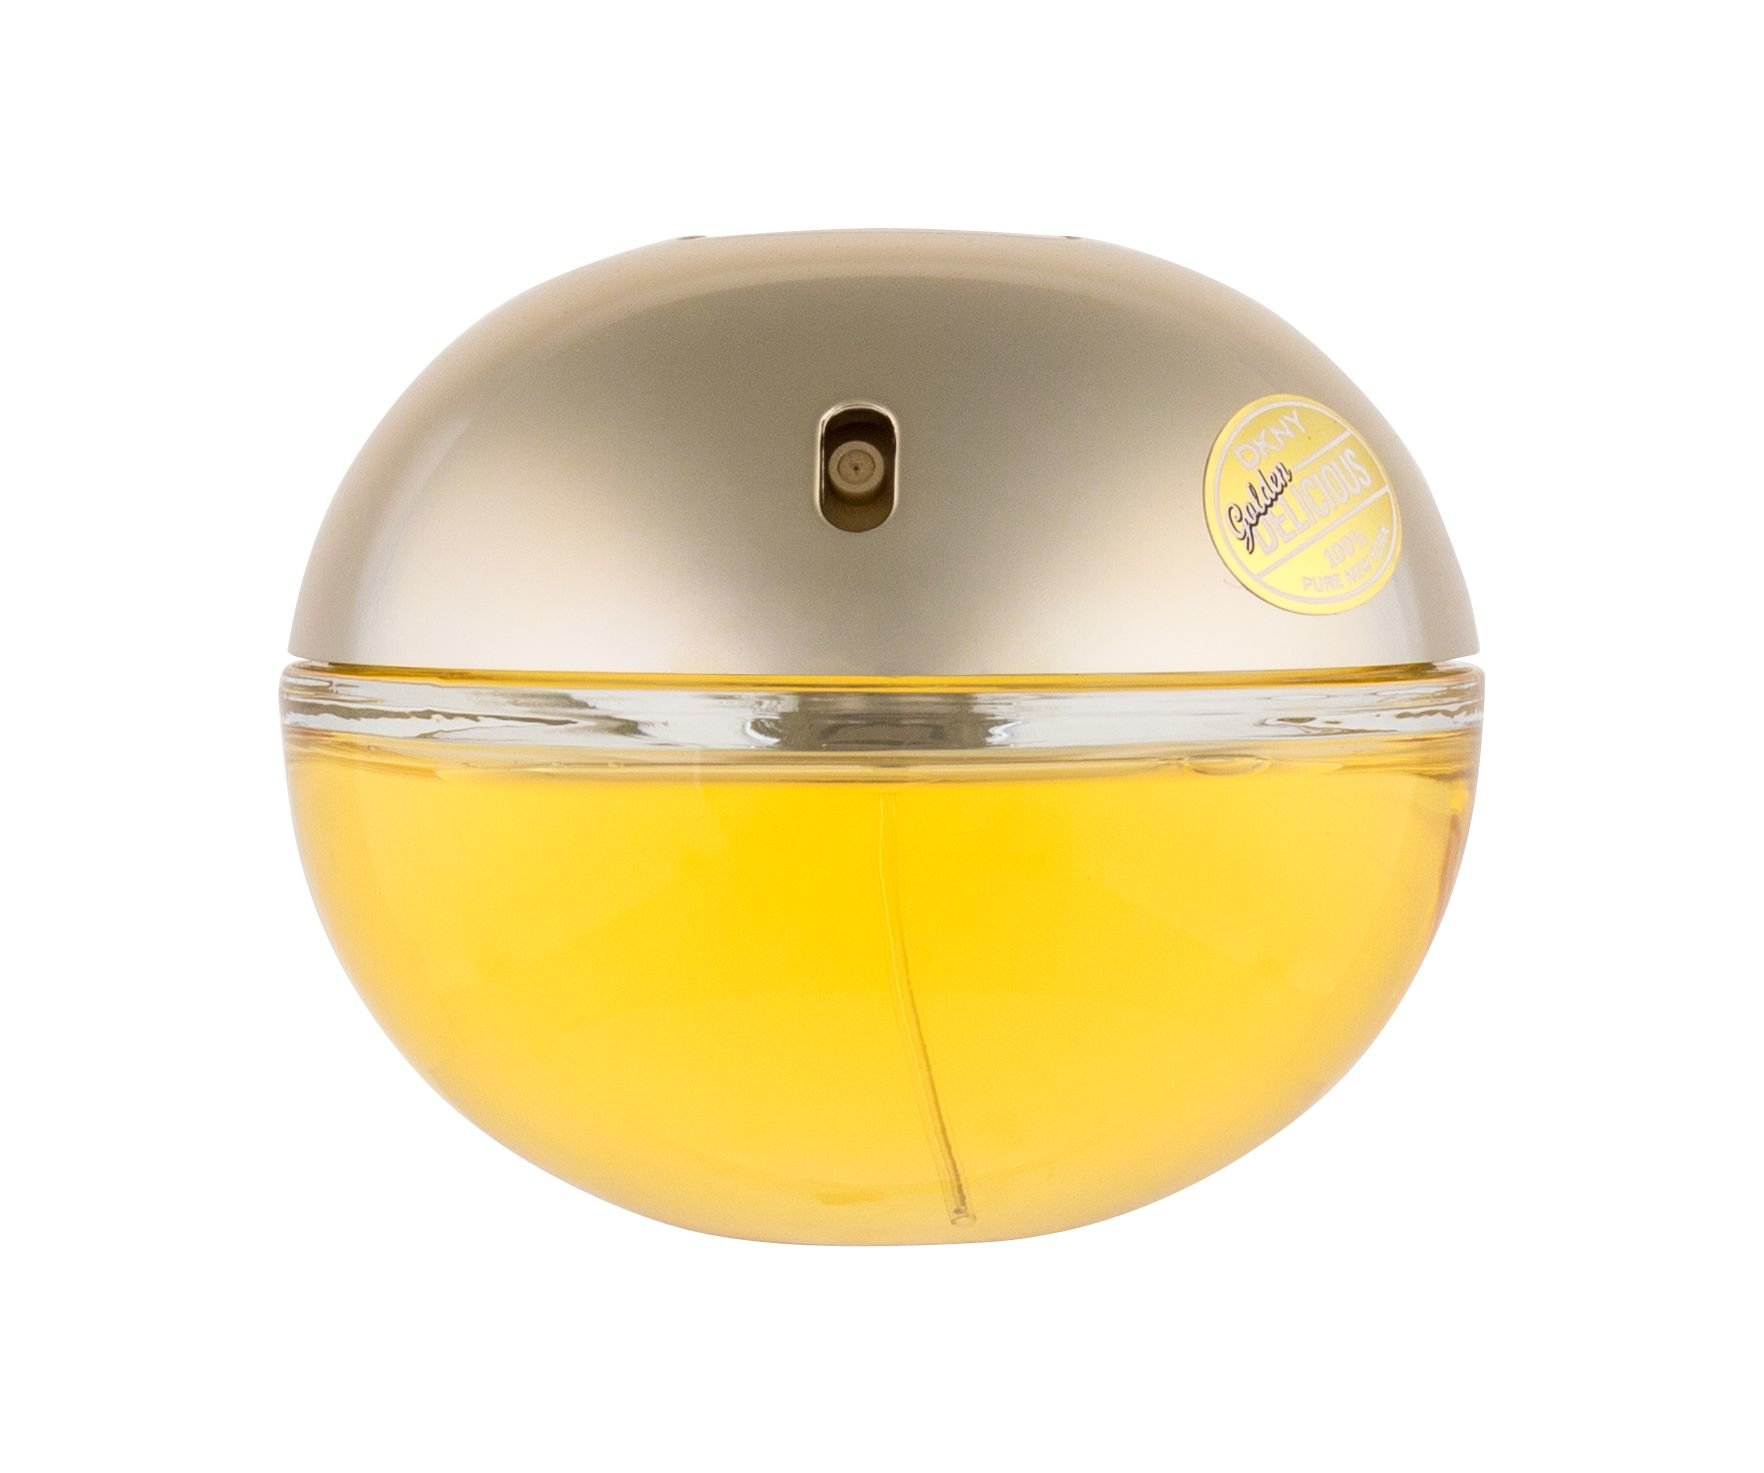 DKNY DKNY Golden Delicious, Parfumovaná voda 100ml, Tester